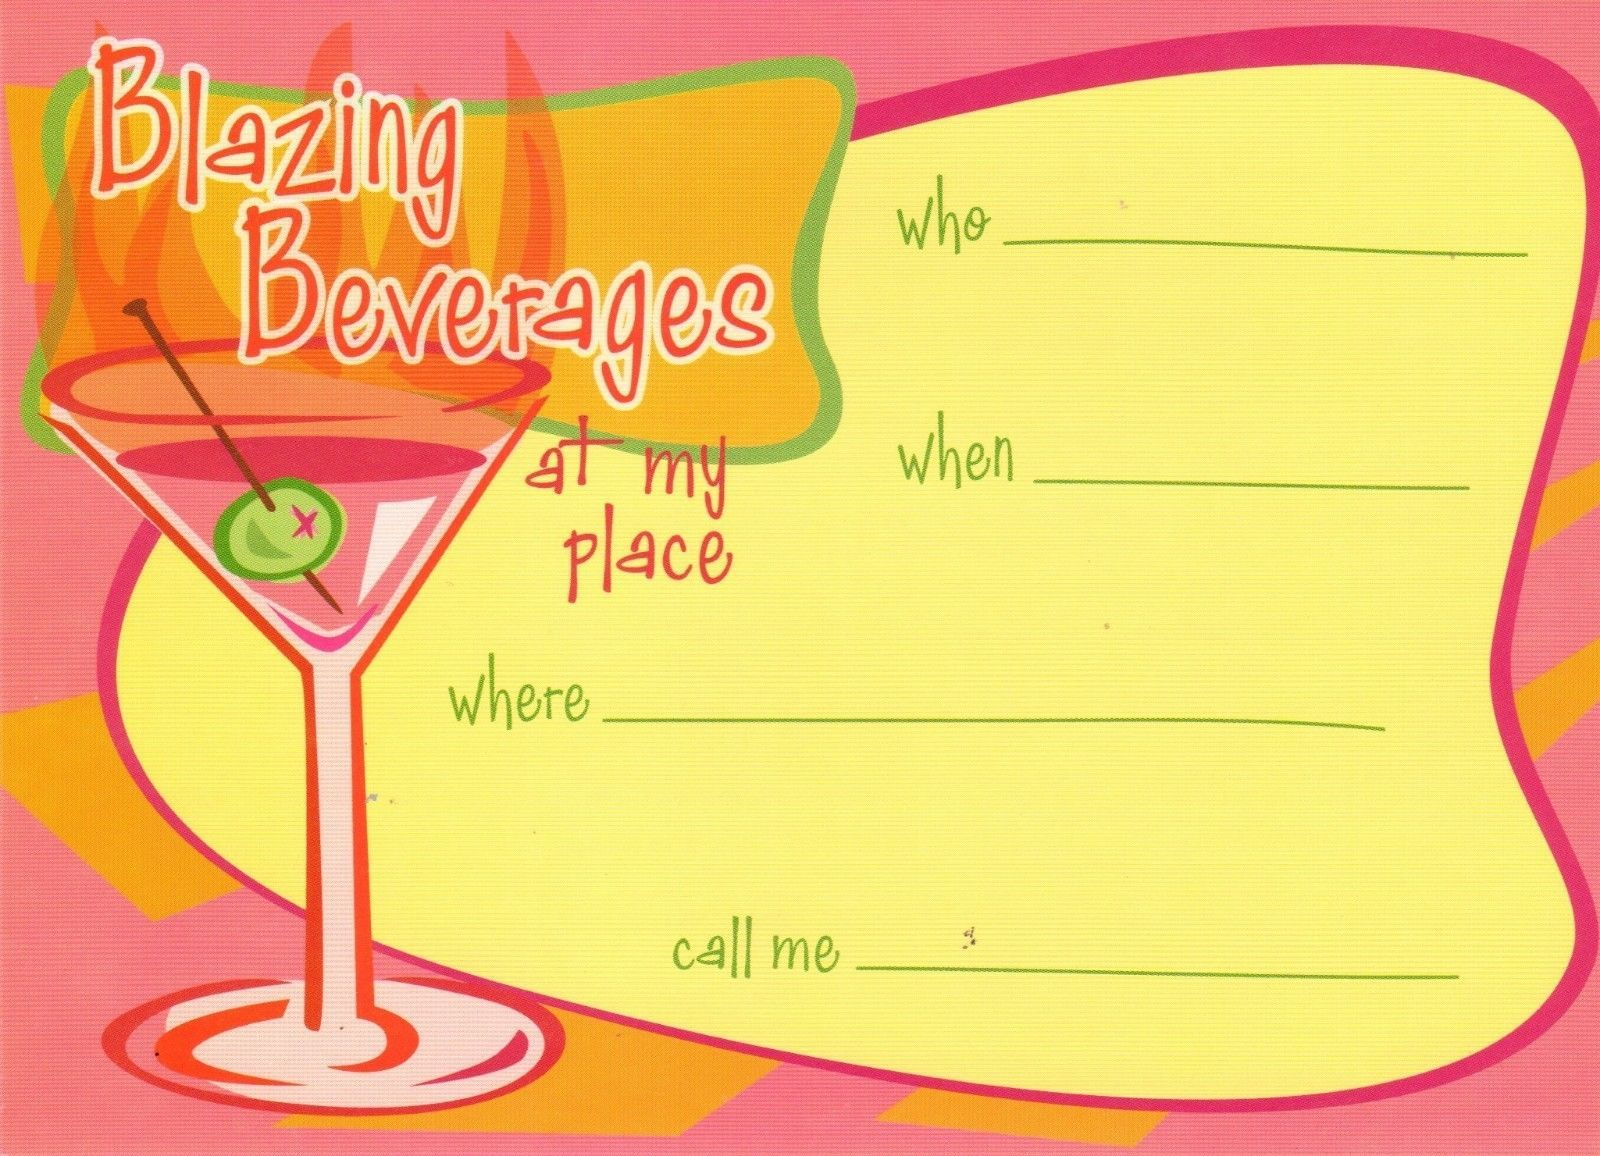 Blazing Beverages Cocktail Party Invitations 10 count Invitations and orange env